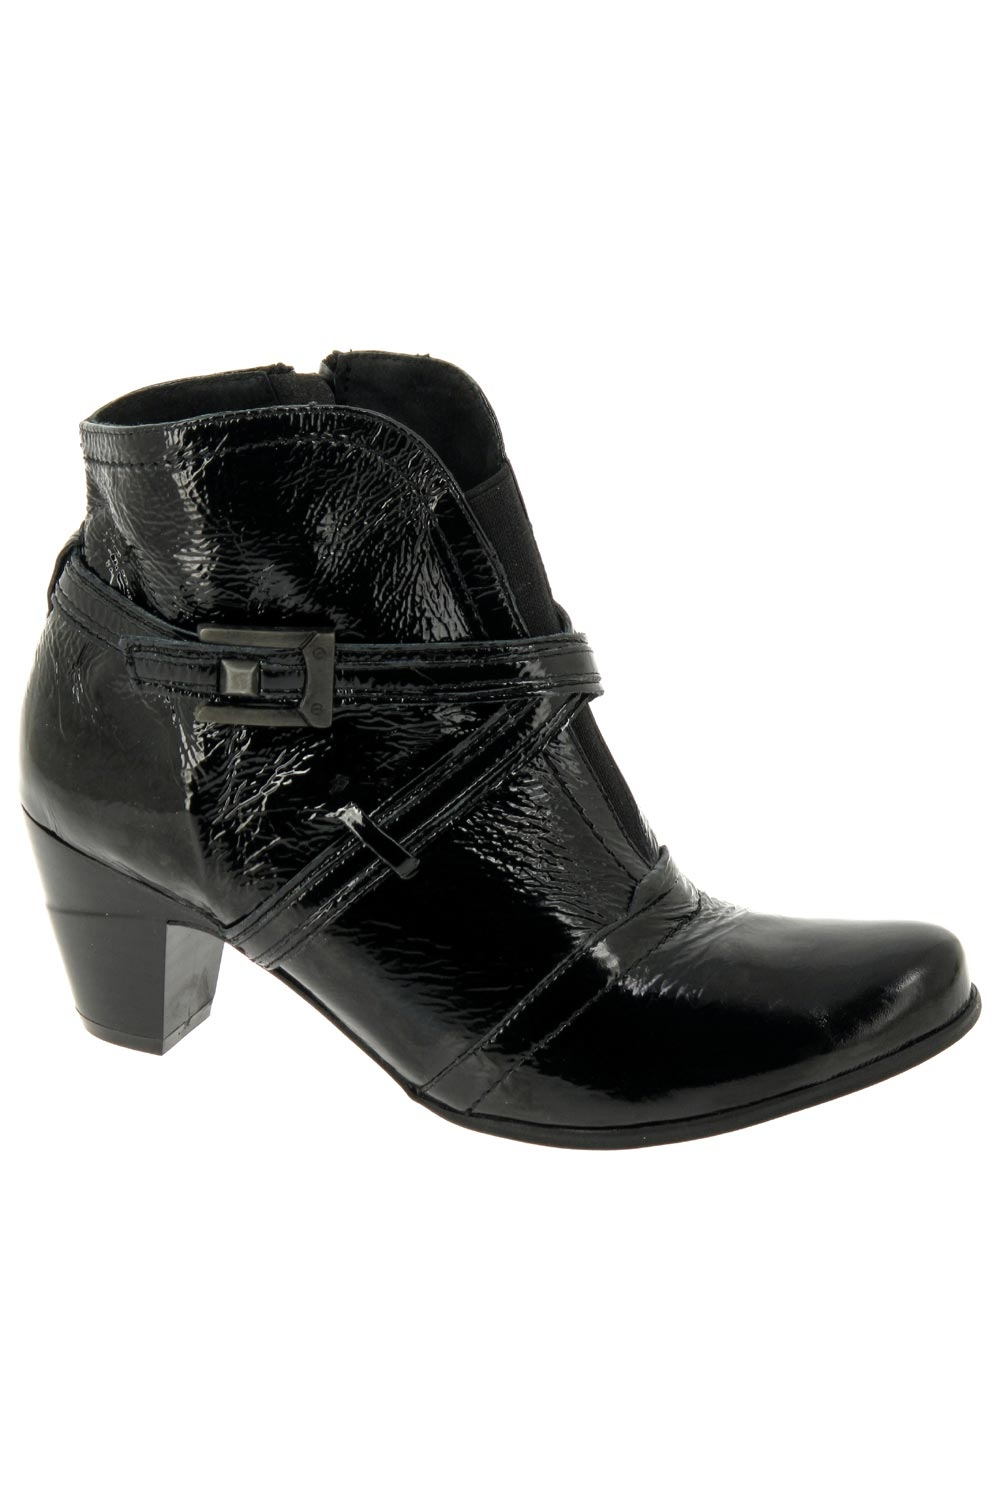 Bottines confort METAYER en cuir lisse noir LKiE3jqCA